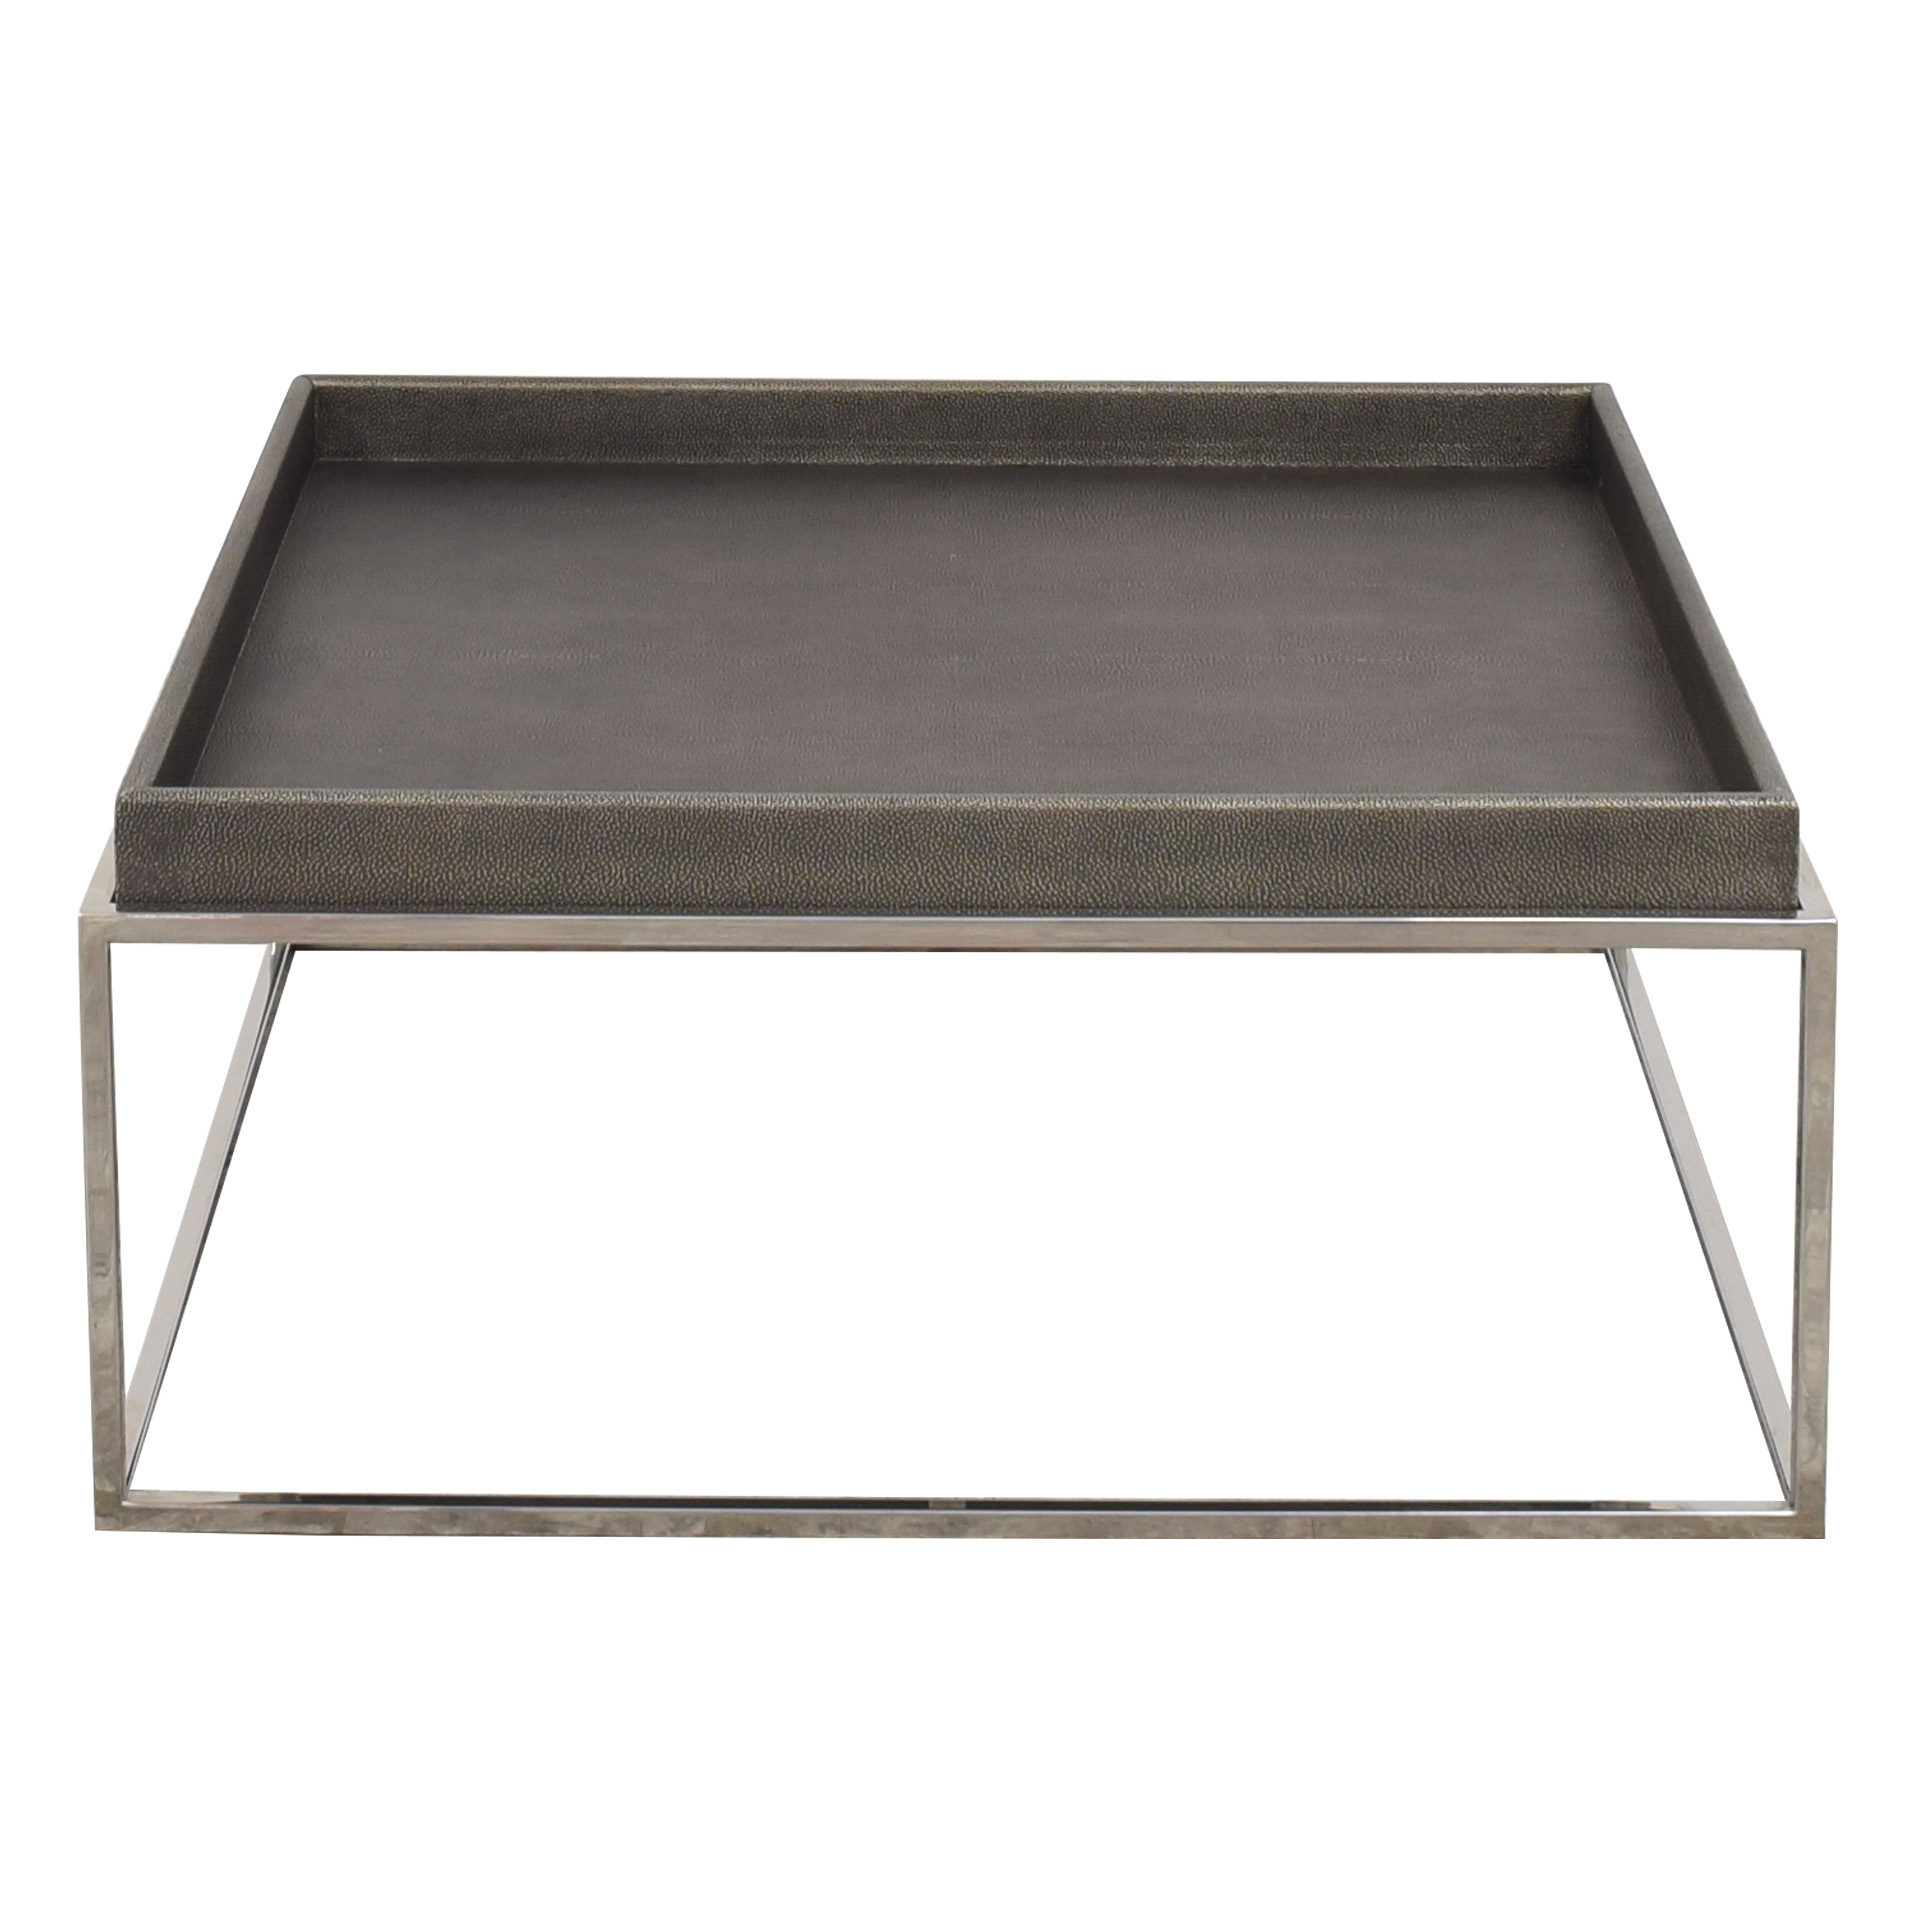 Restoration Hardware Restoration Hardware Hudson Coffee Table dimensions